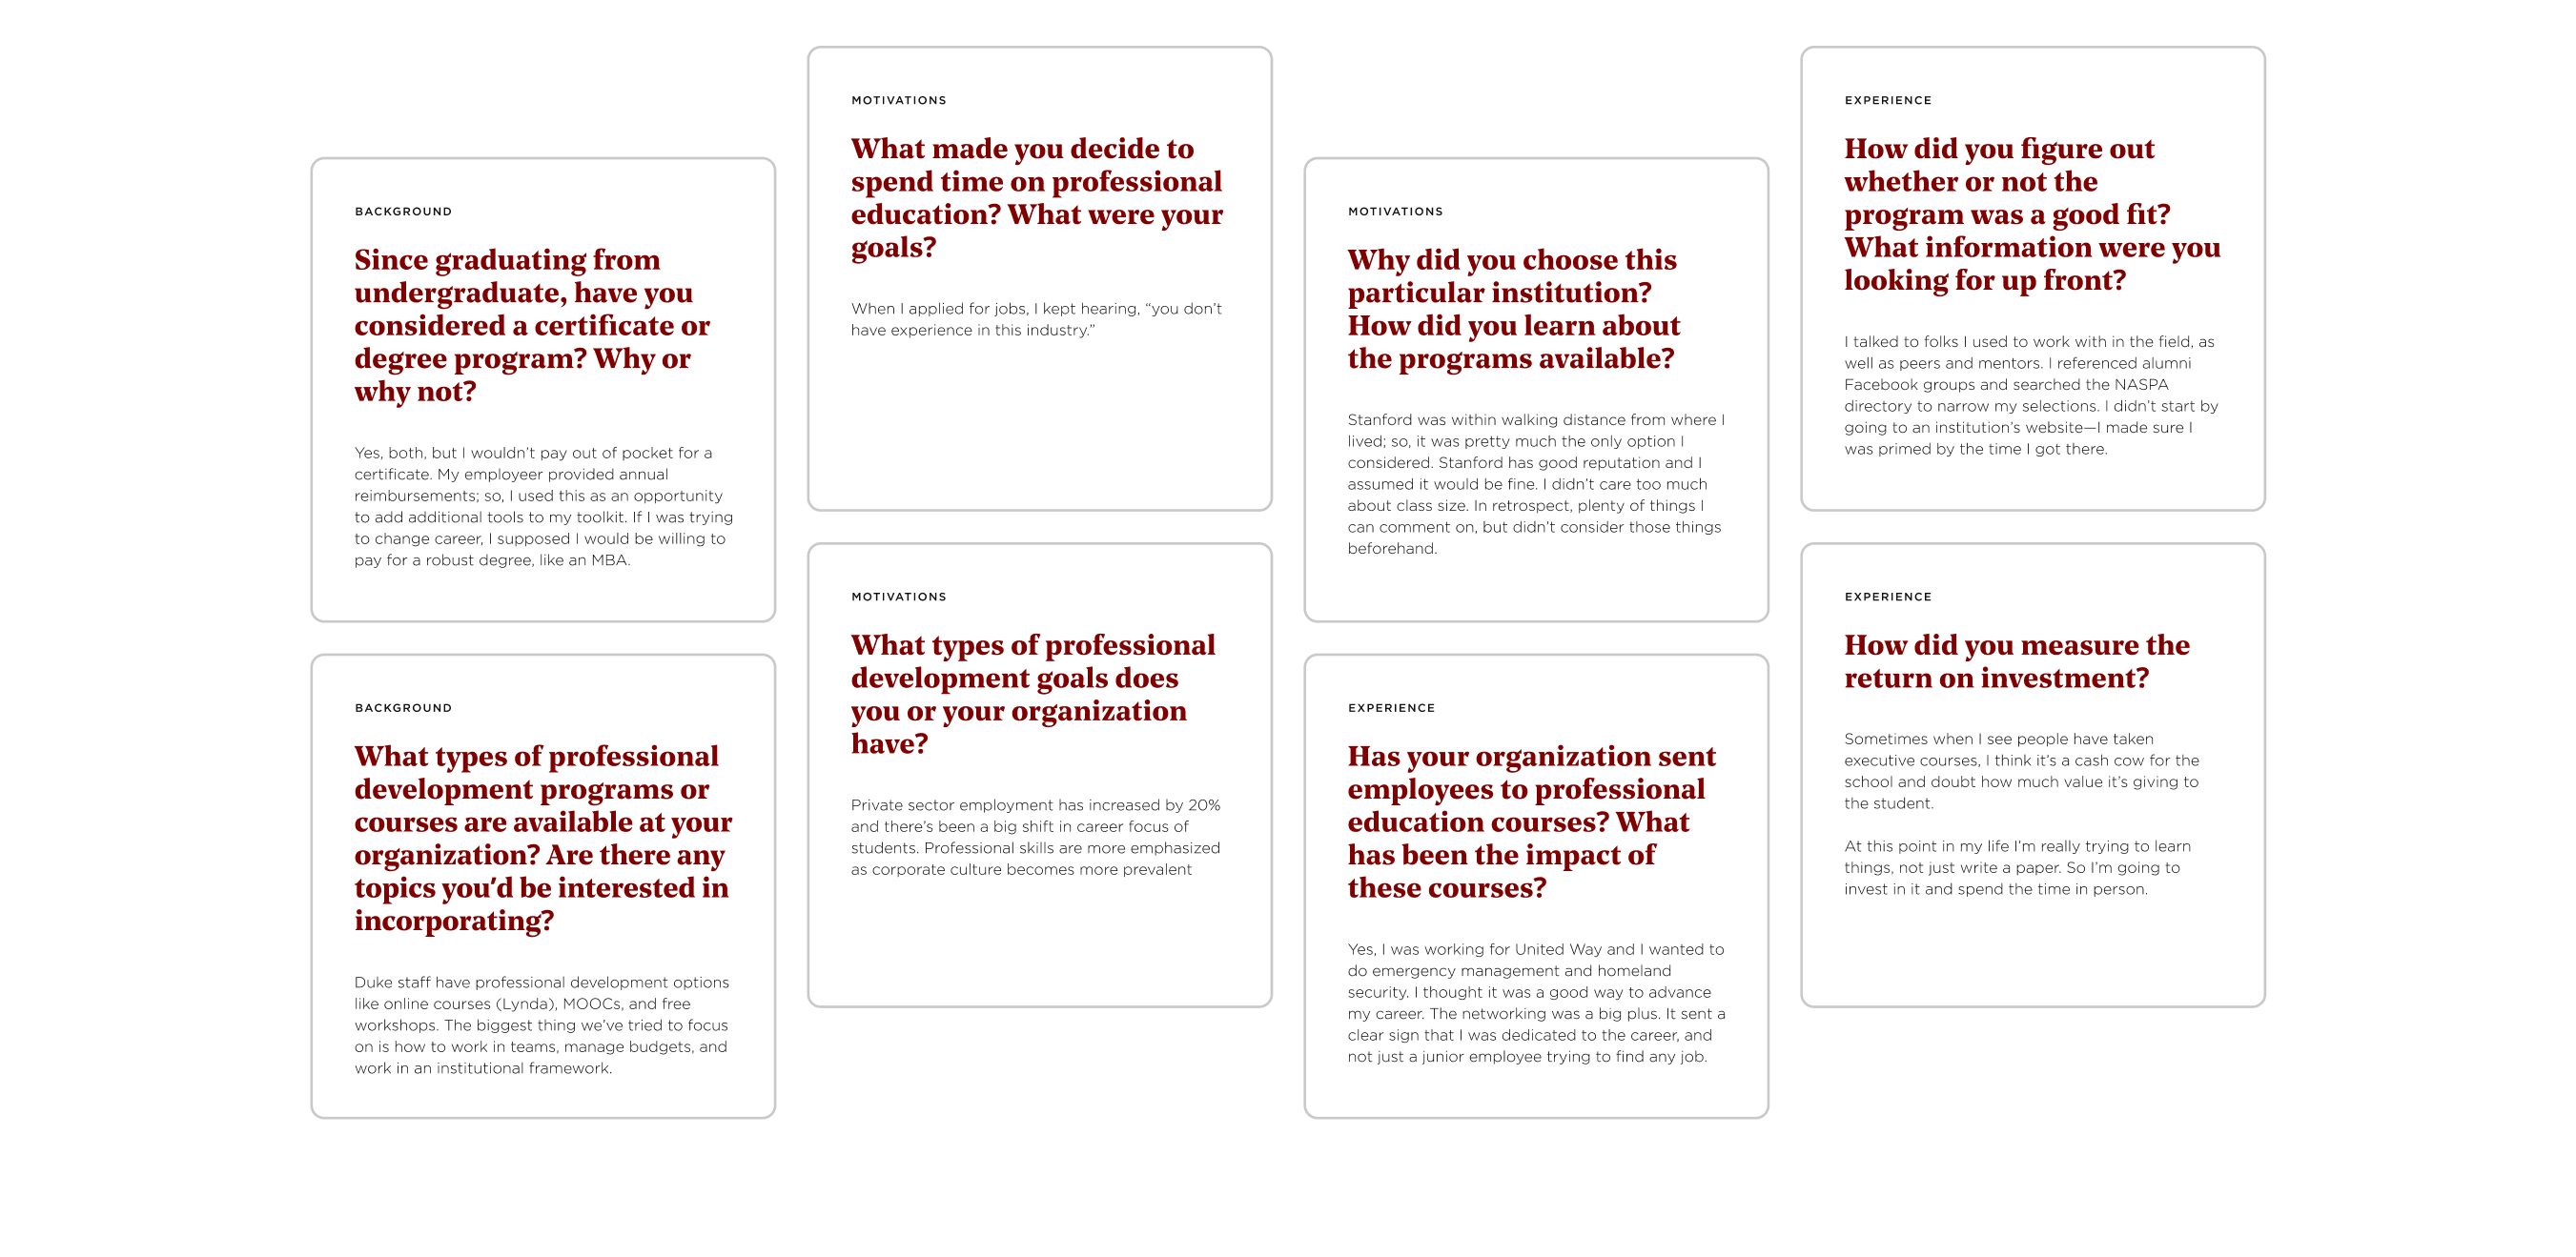 Eight cards with questions and answers from user interviews